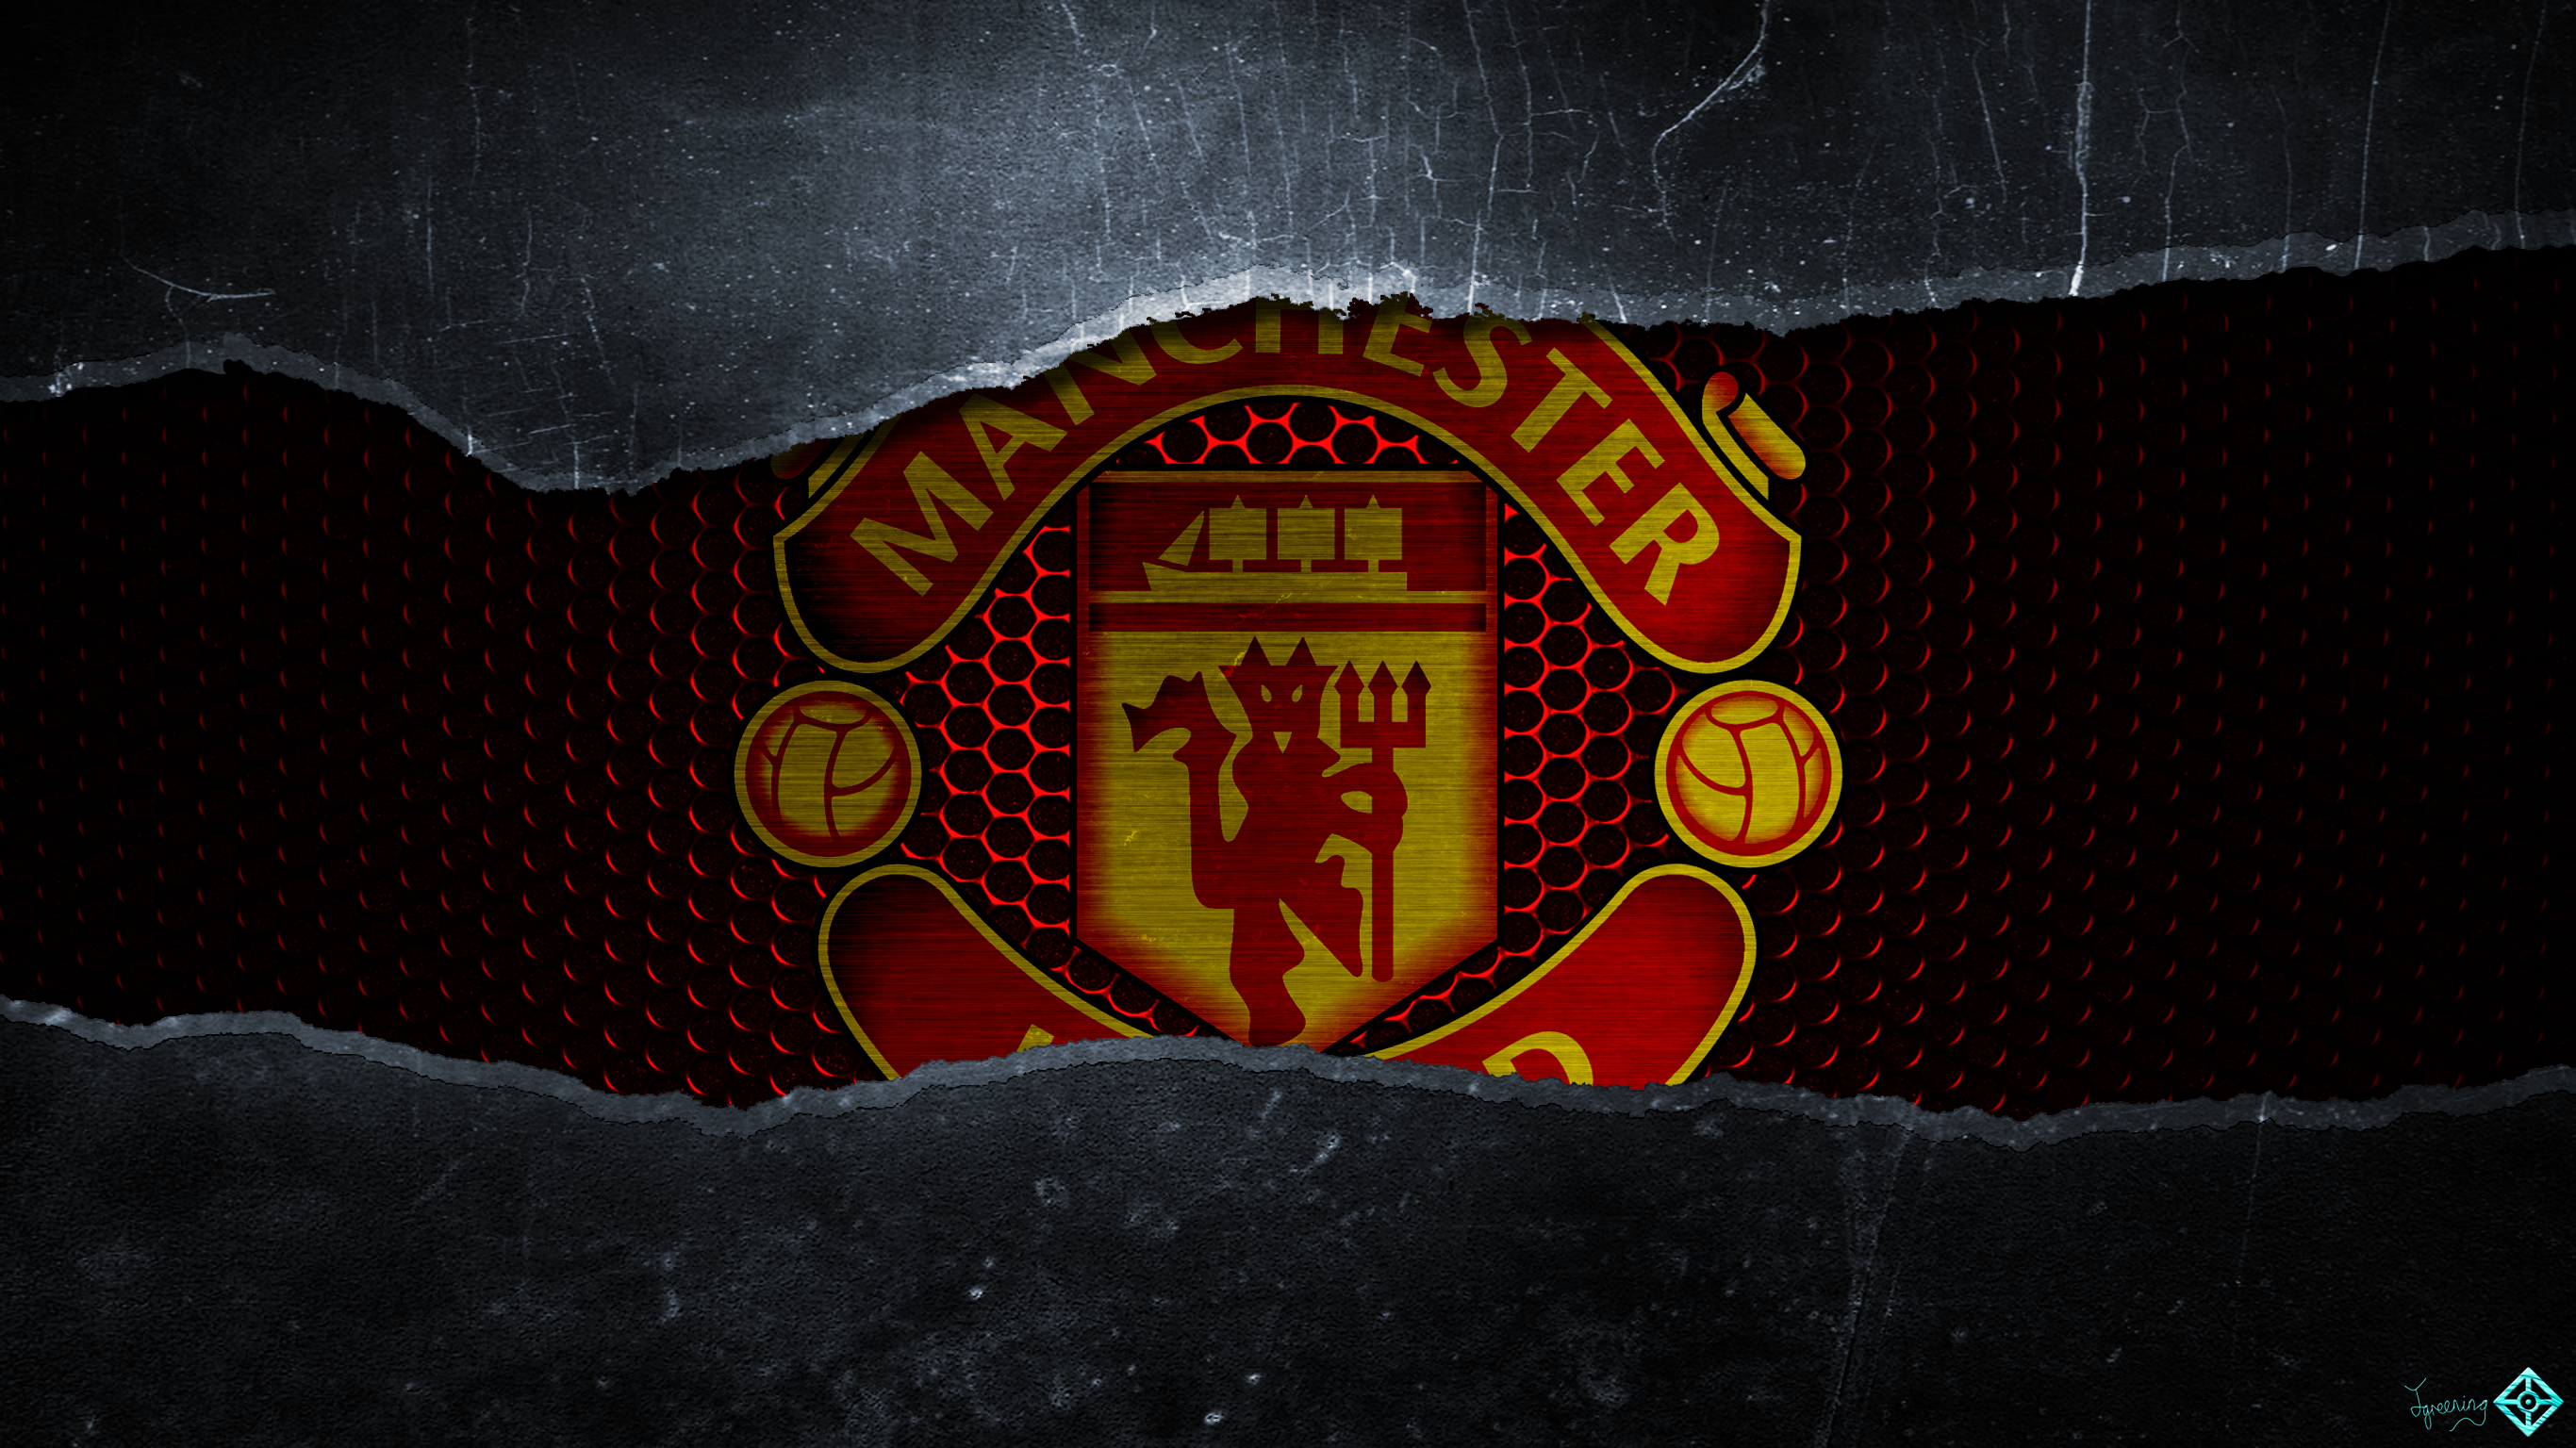 List of Latest Manchester United Wallpapers Android manchester united - Google Search